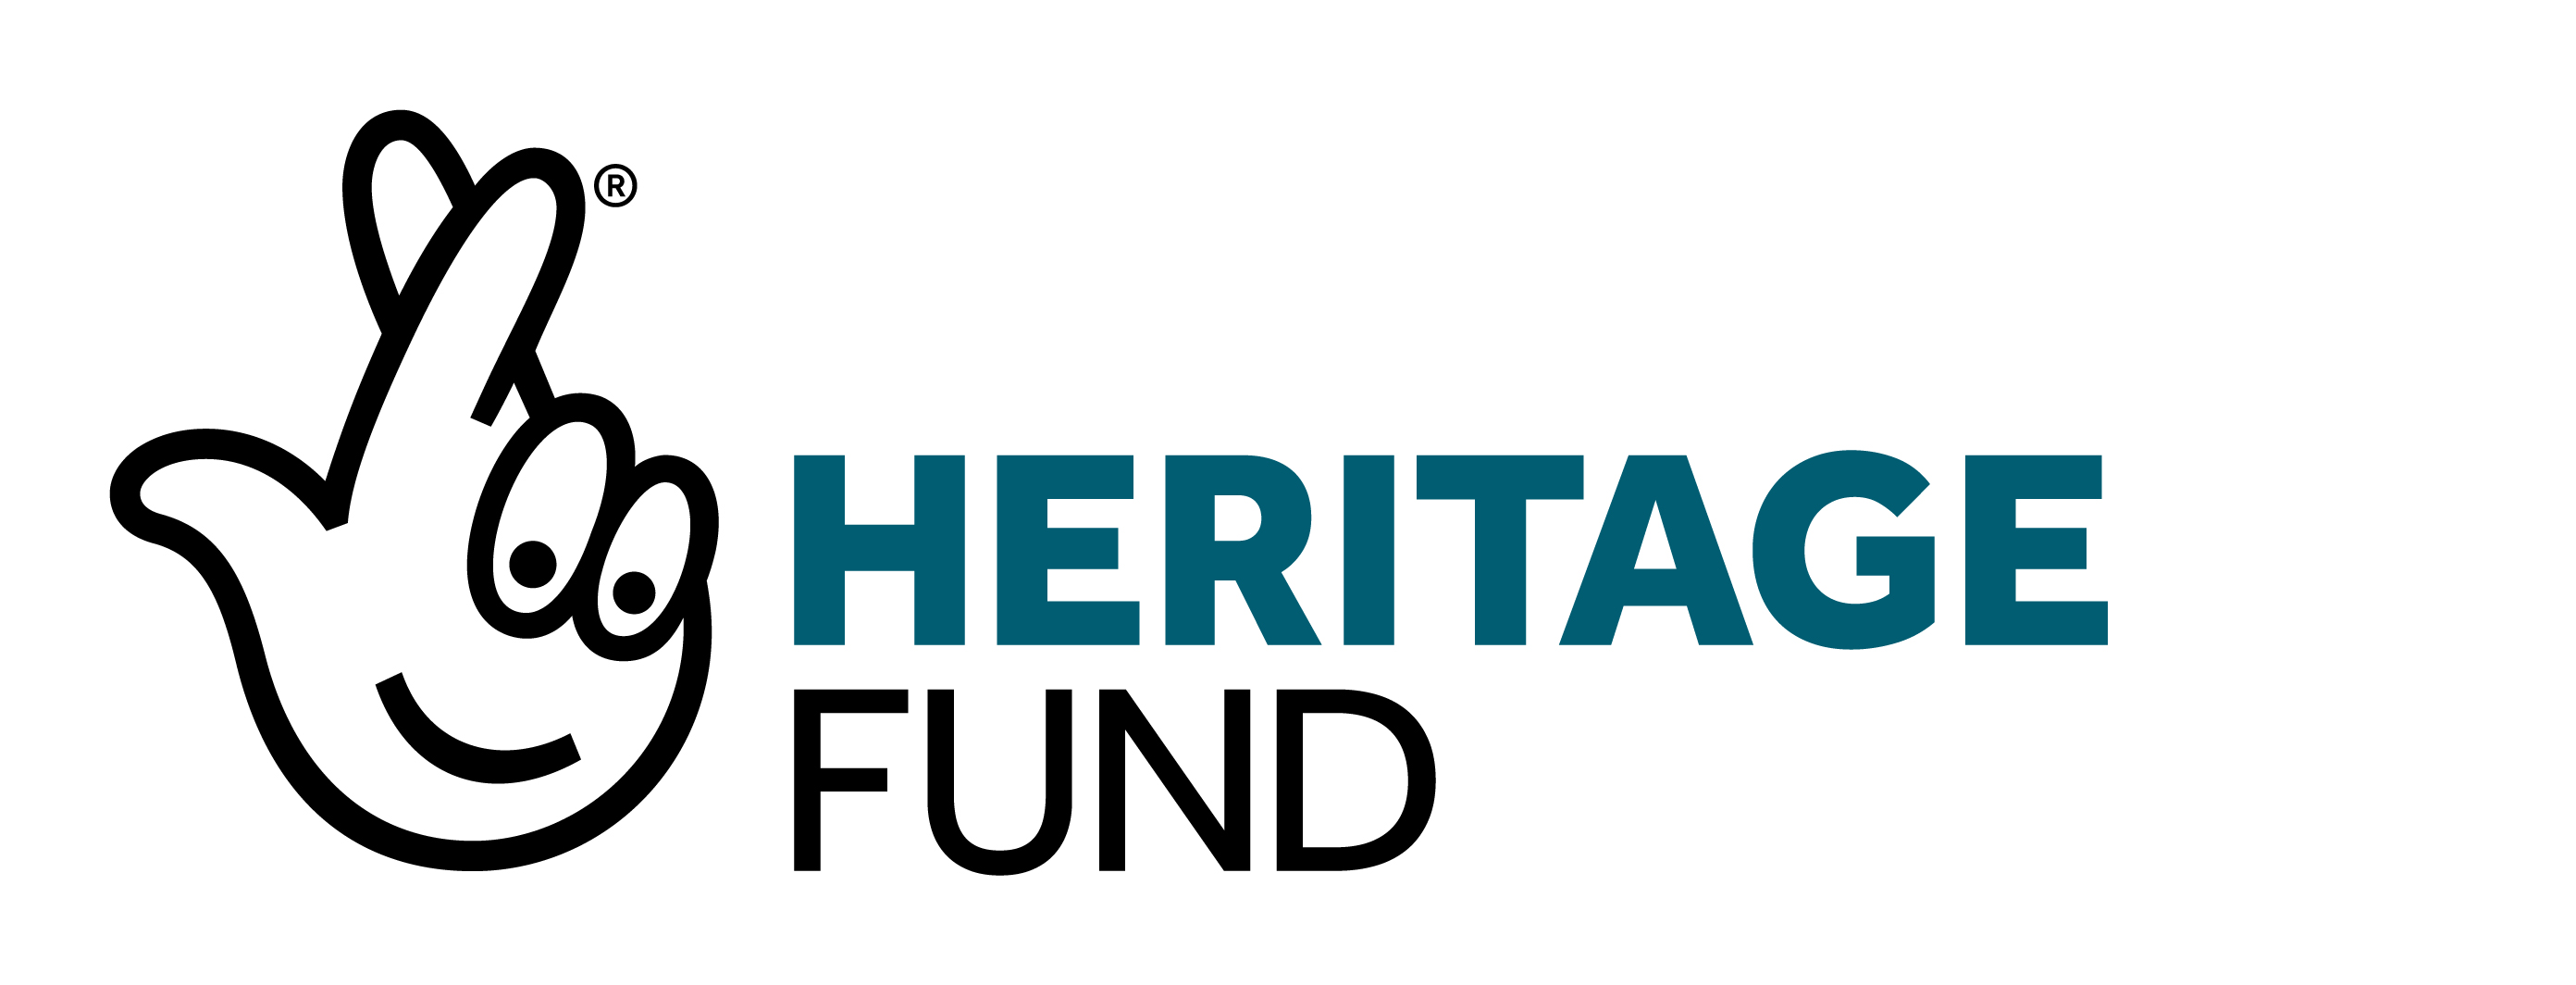 Heritage lottery logo full colour version